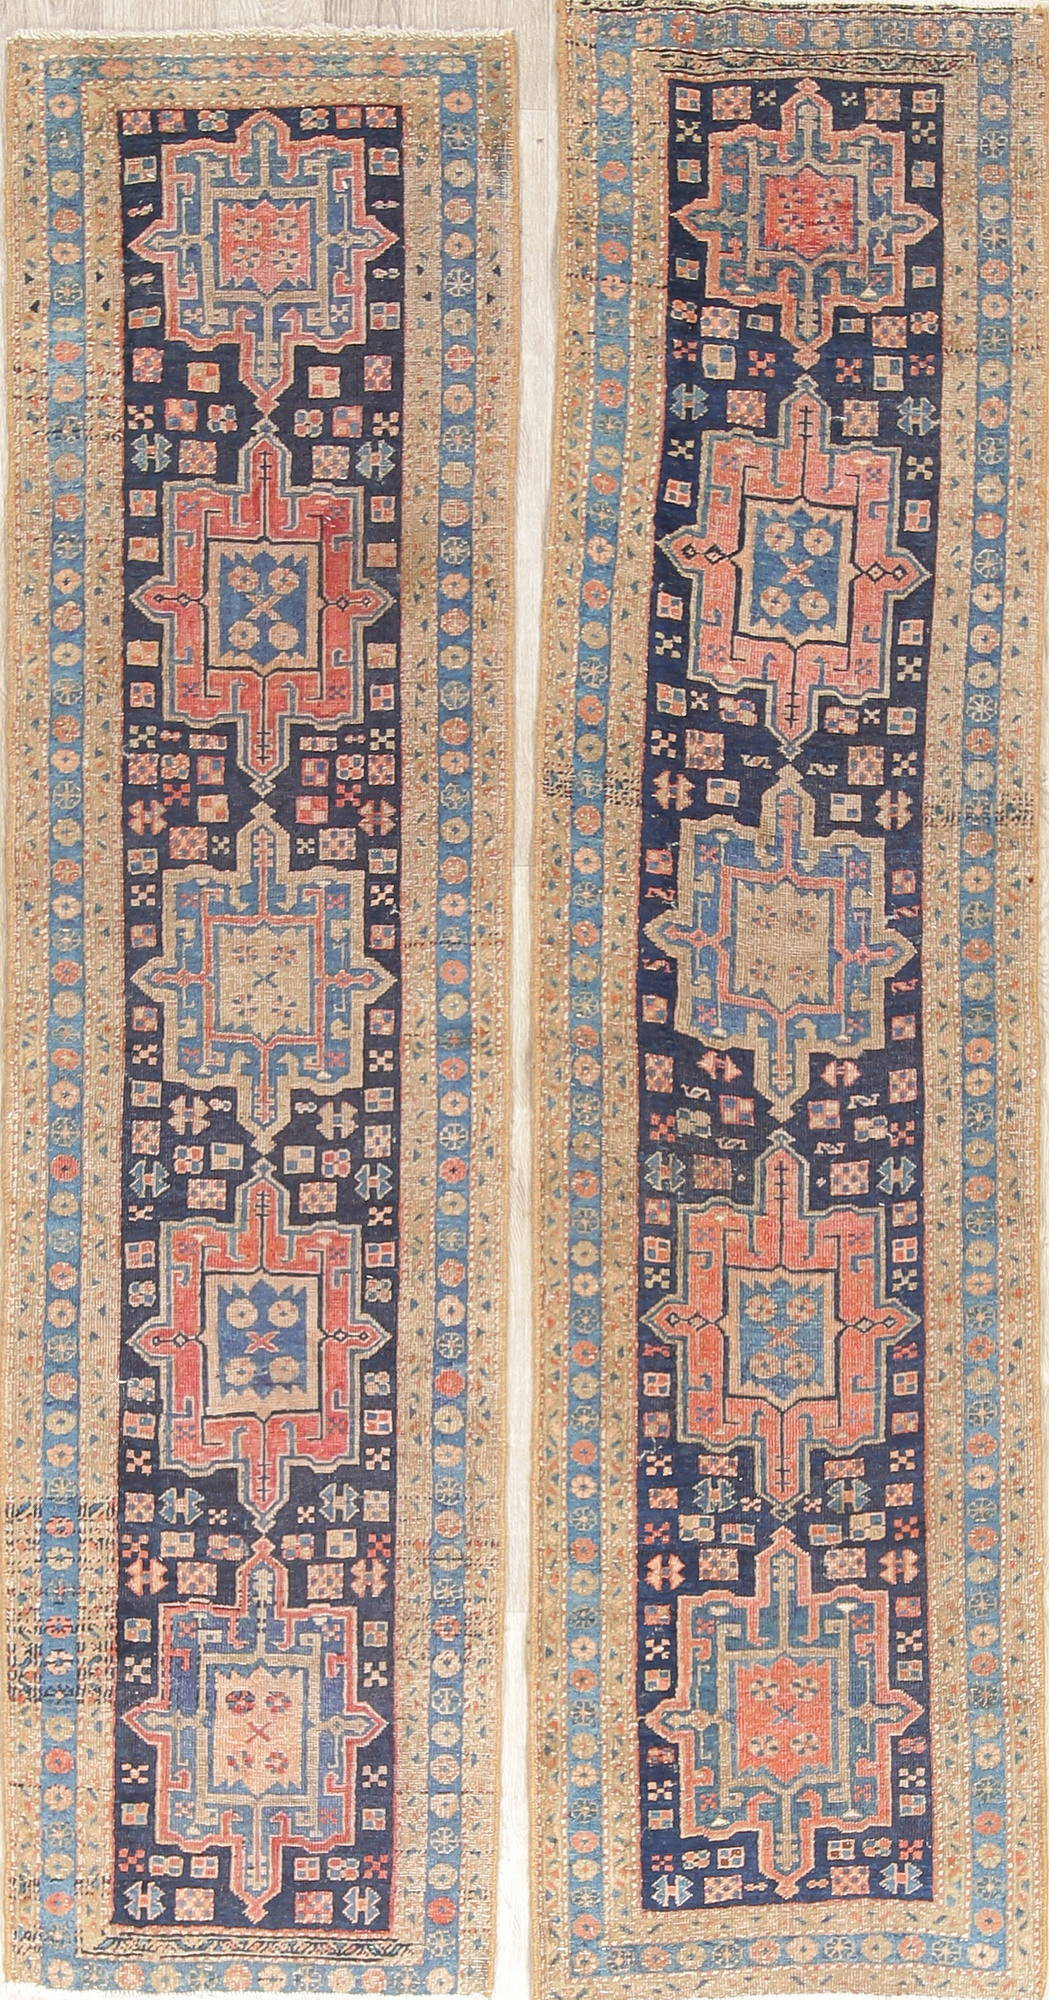 Pair Of Vegetable Dye Pre-1900 Antique Heriz Bakhshayesh Persian Runner Rug  2x9